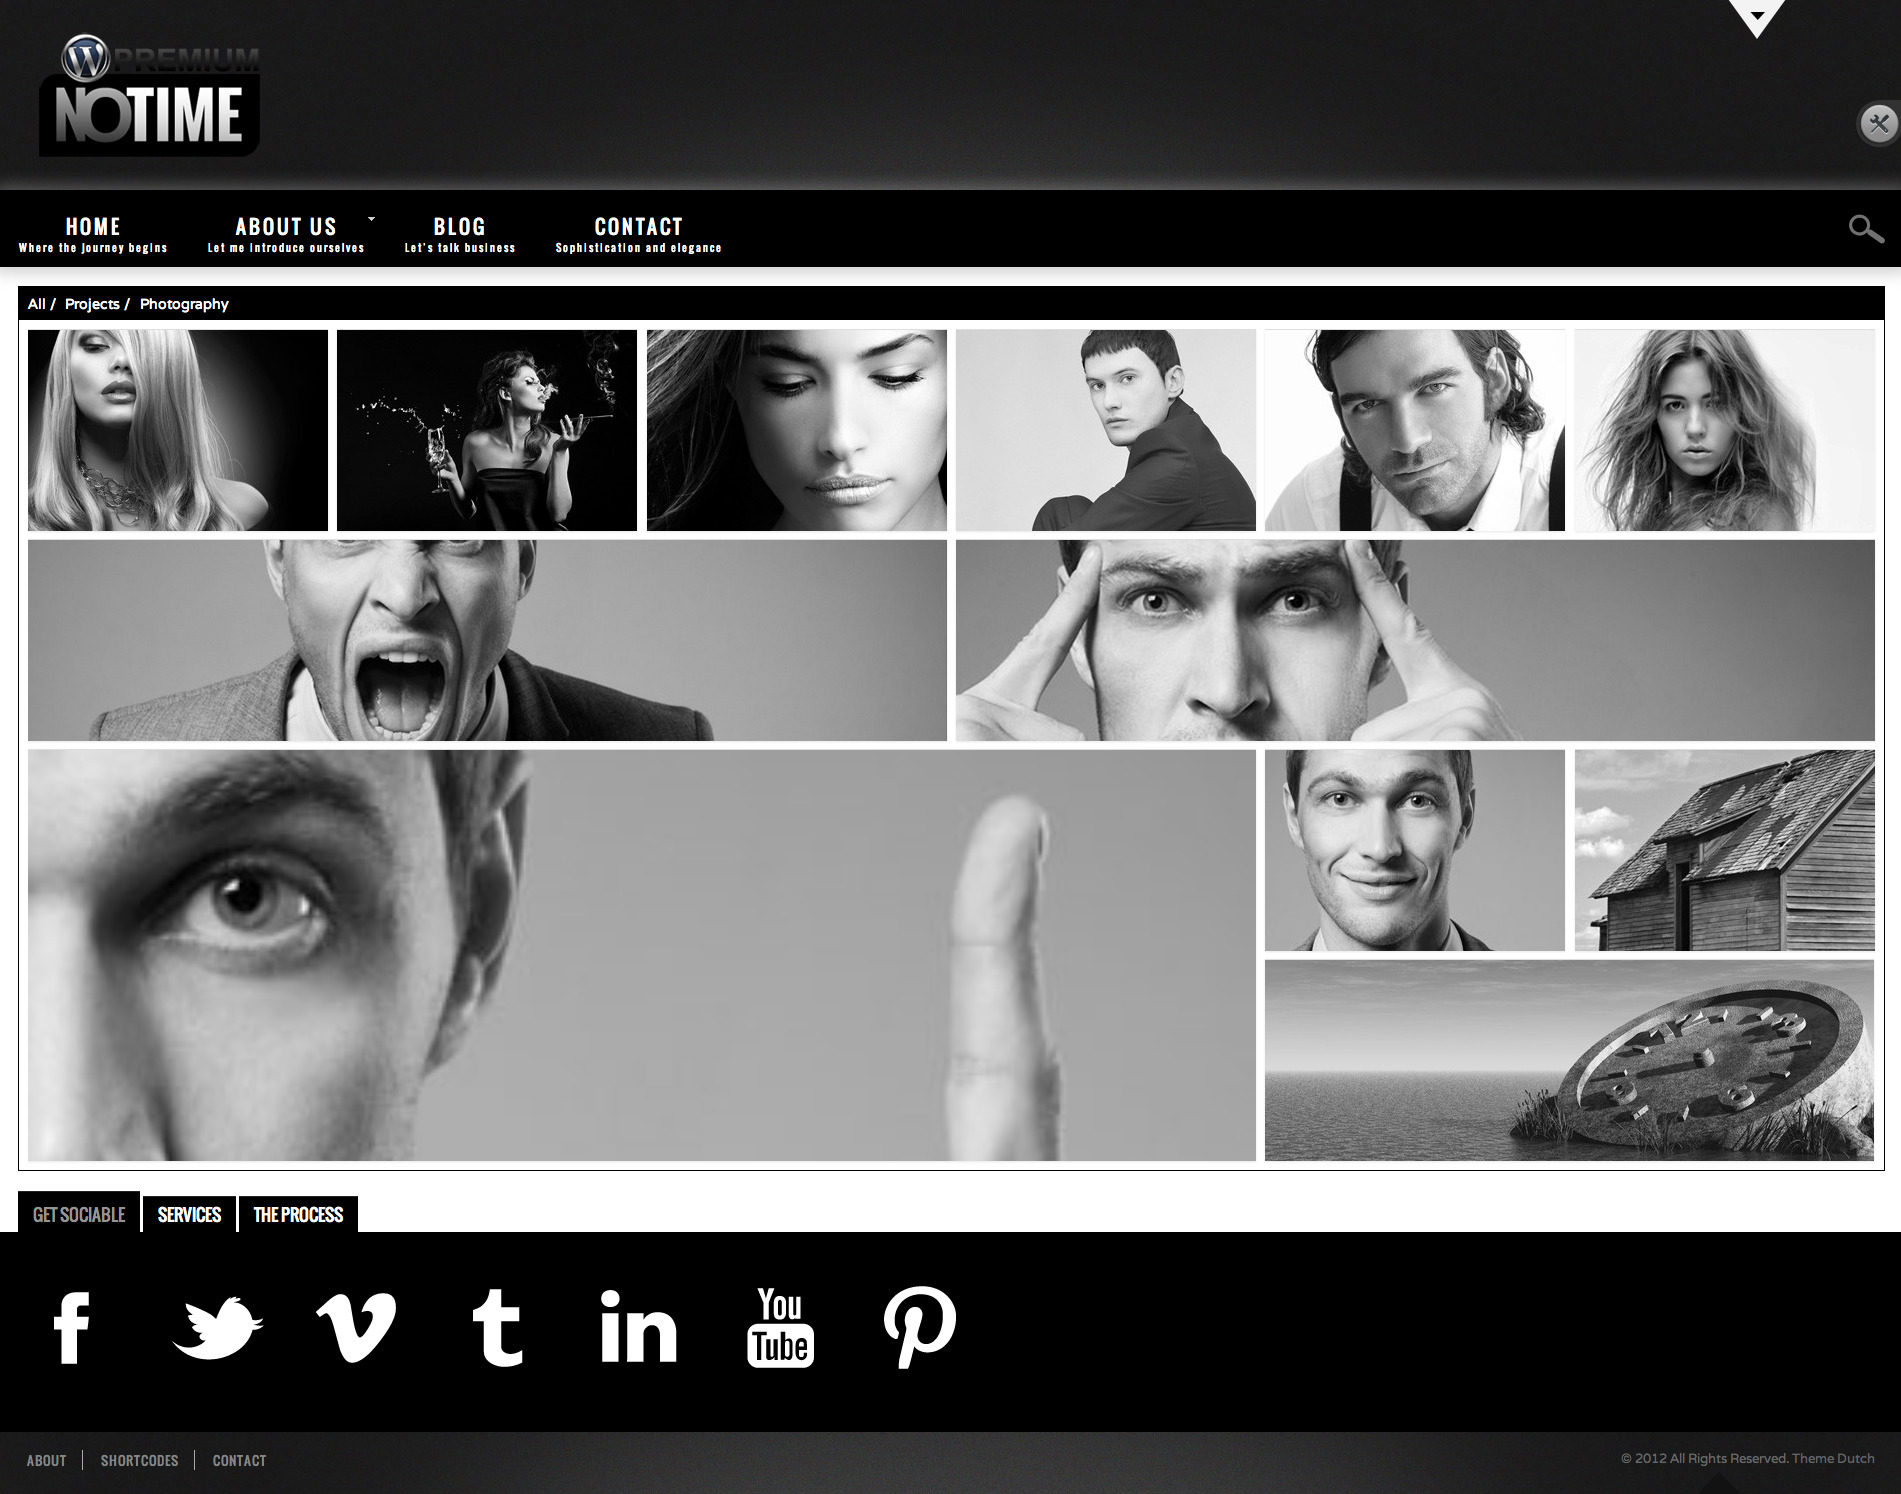 NOTIME - Business Portfolio WordPress Theme